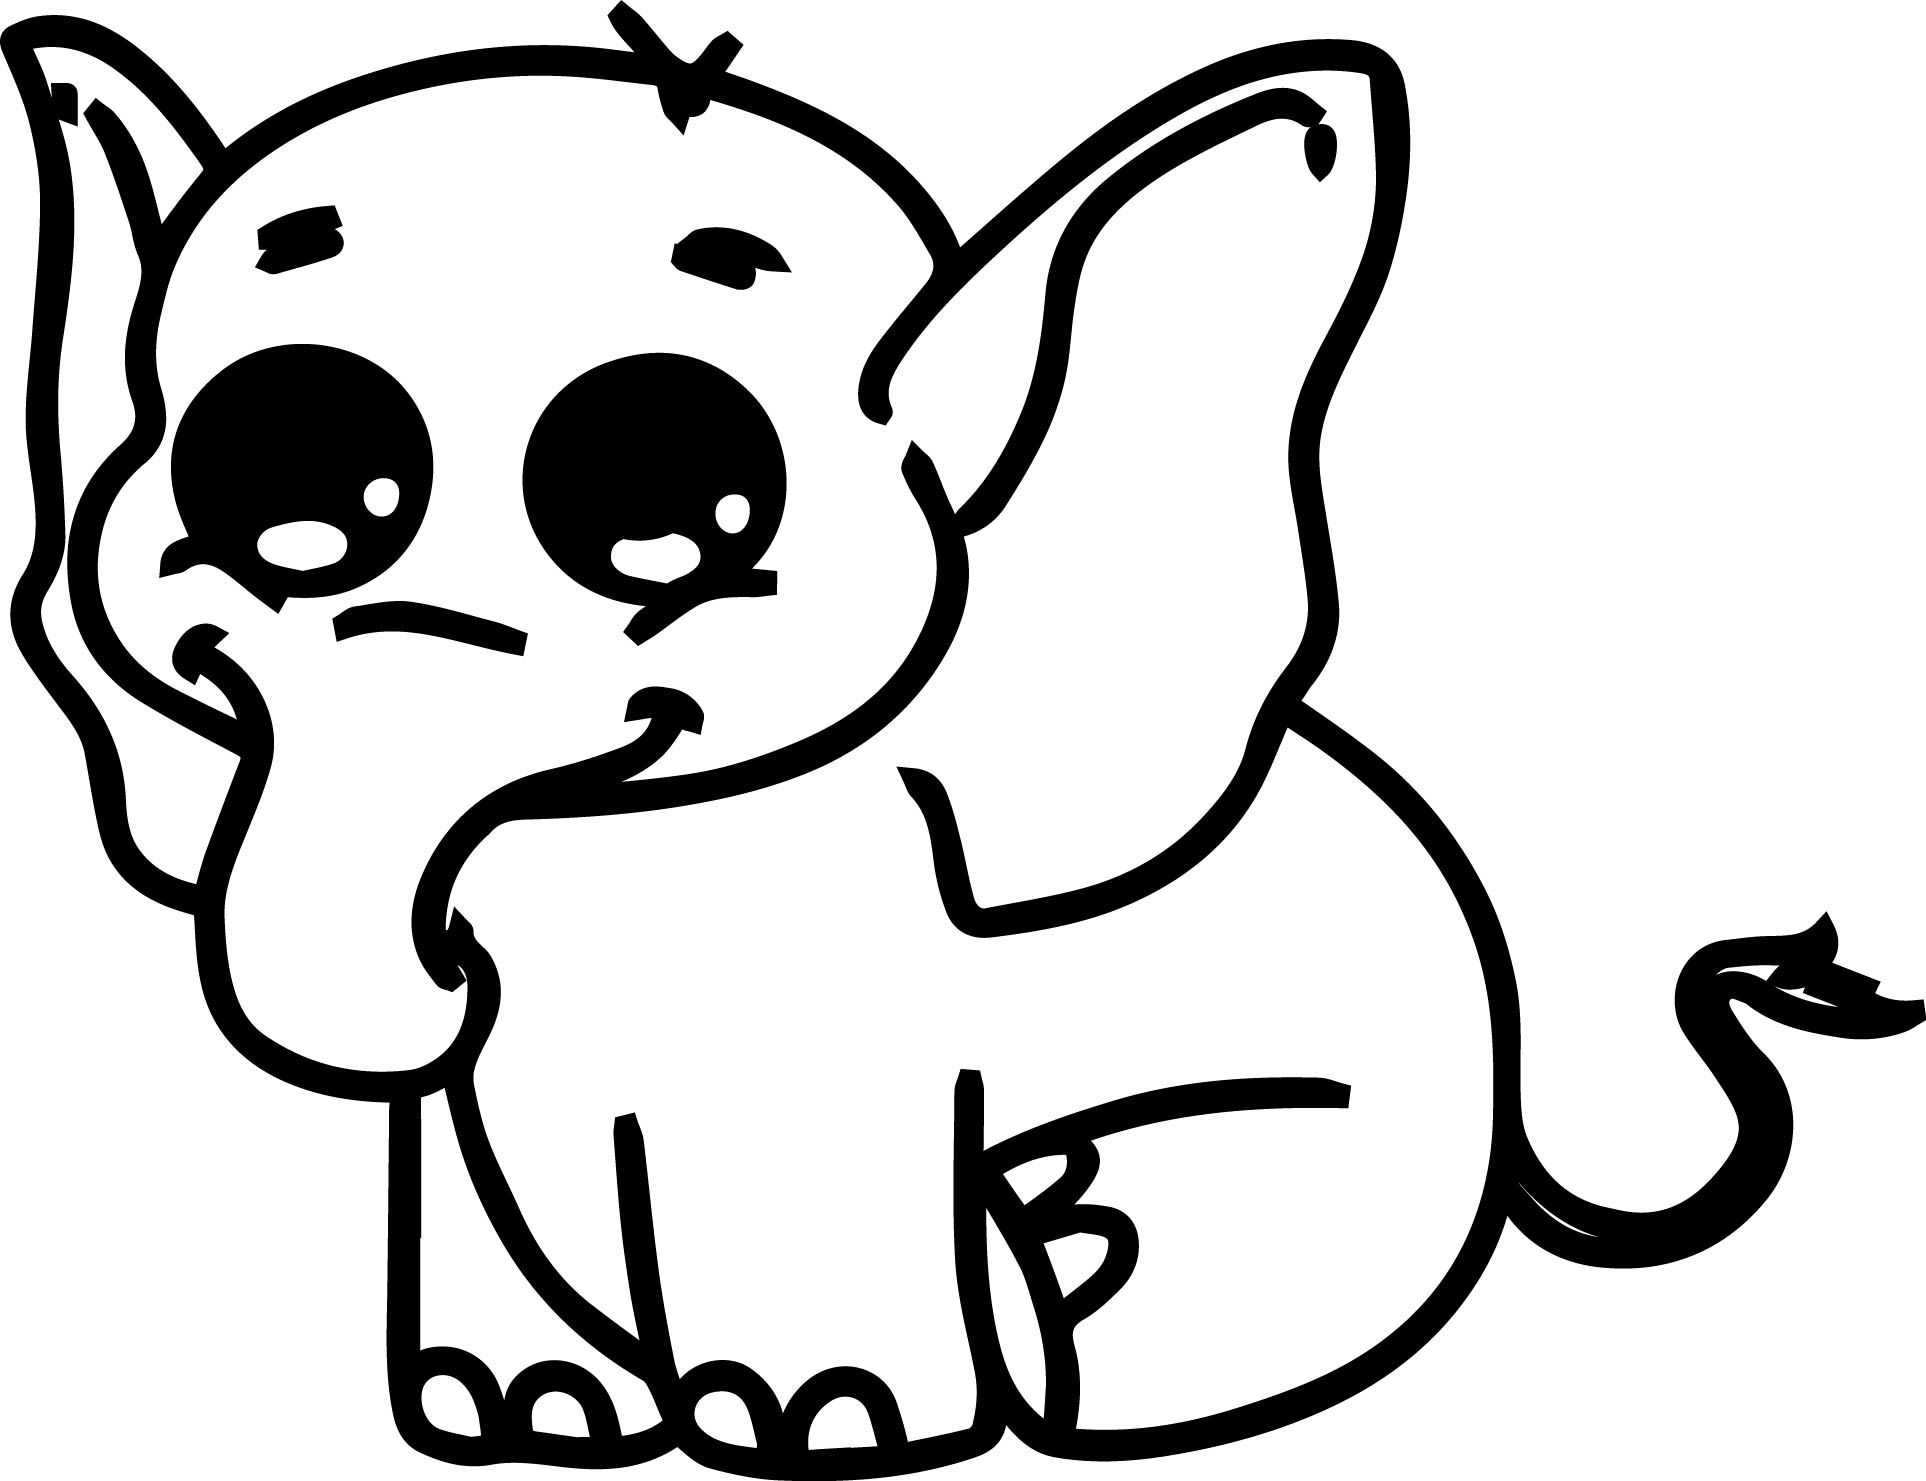 printable elephant coloring pages elephant 20 free coloring book printables popsugar printable elephant pages coloring